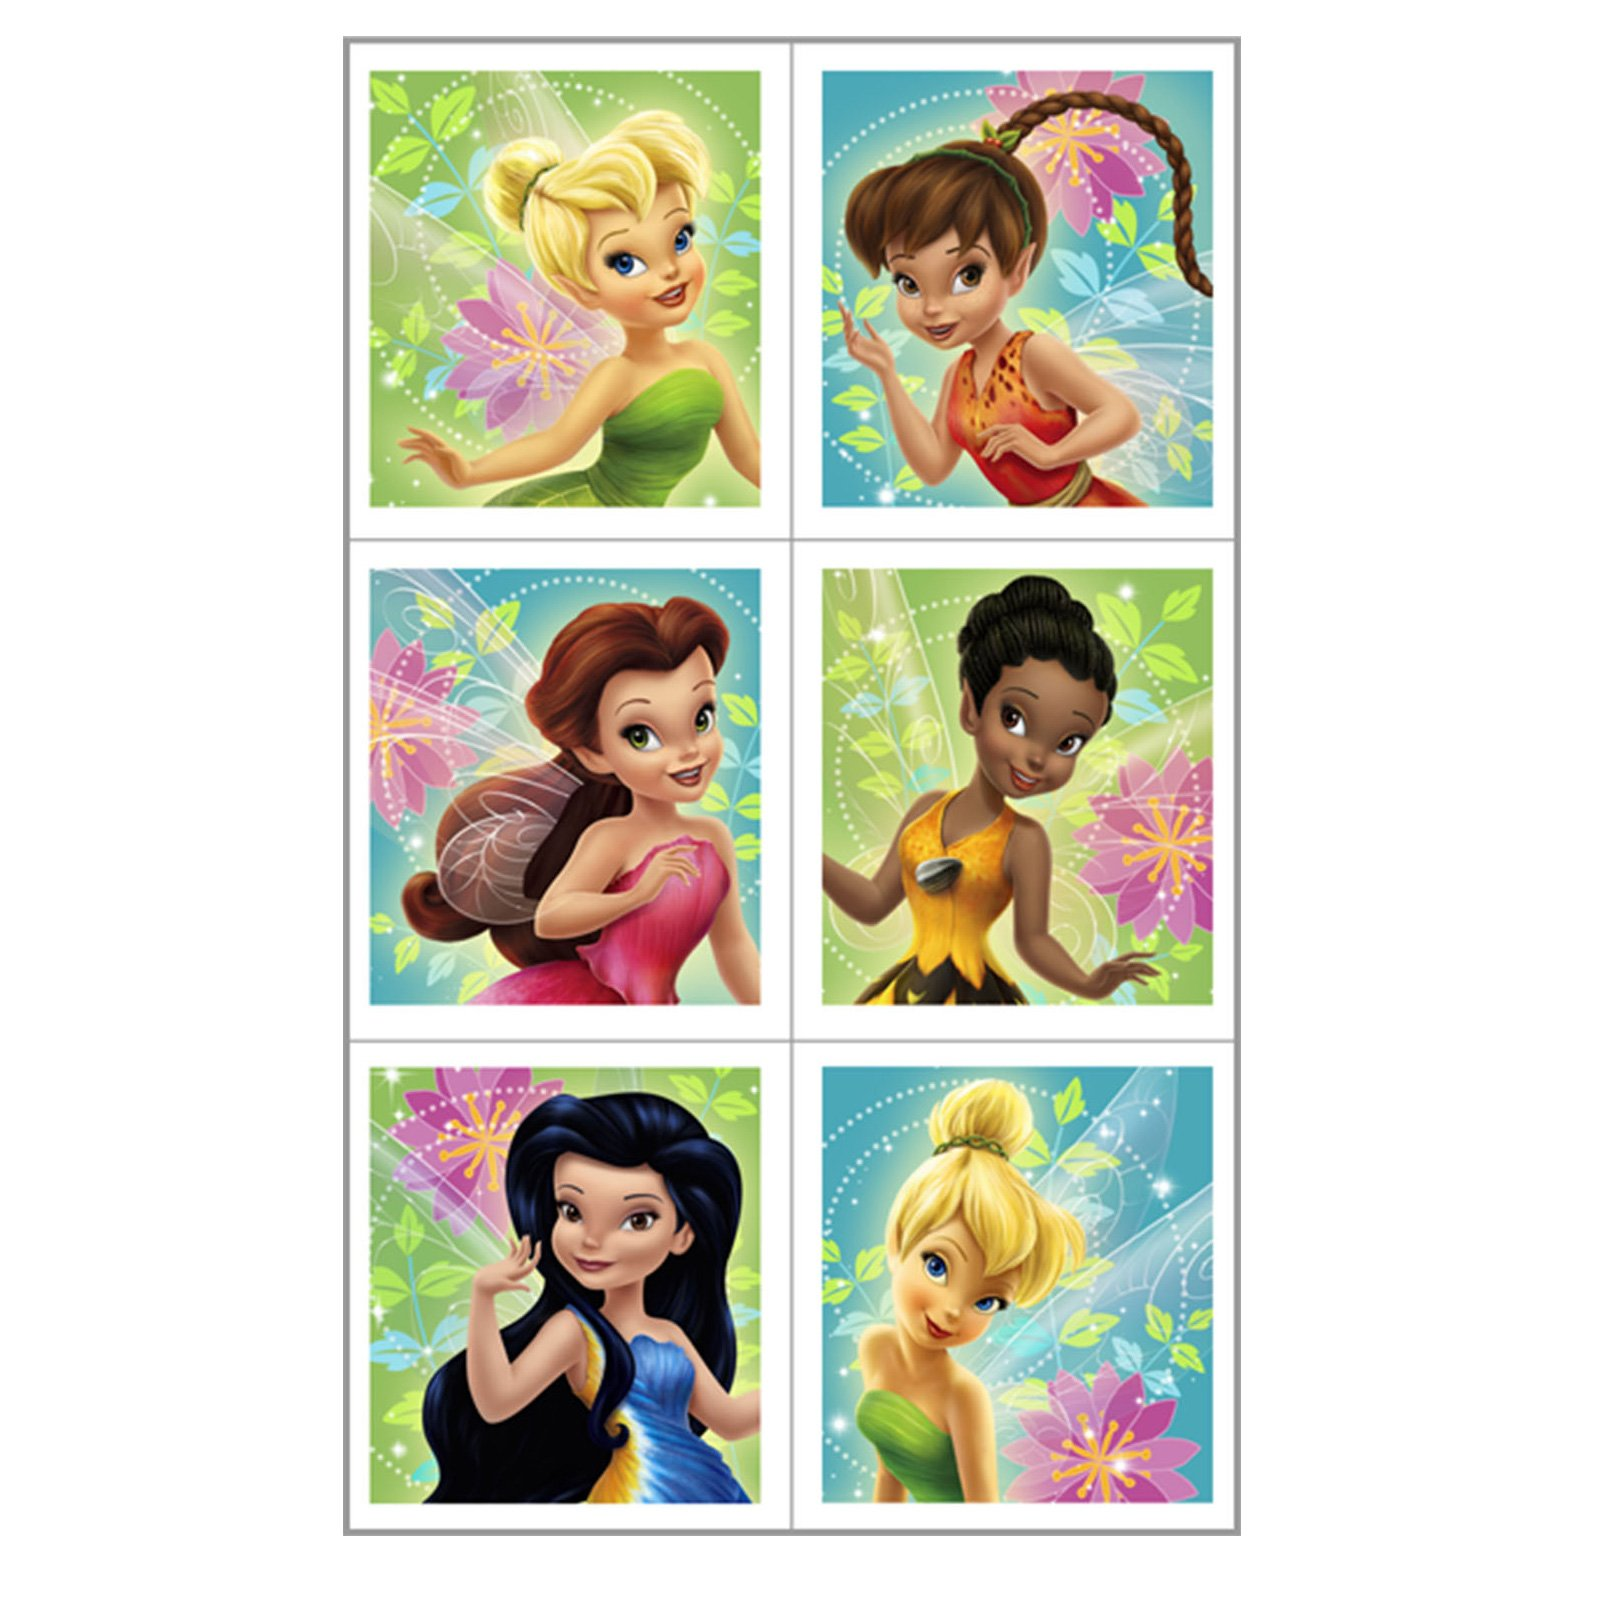 Disney's Fairies Sticker Sheets (4 count)